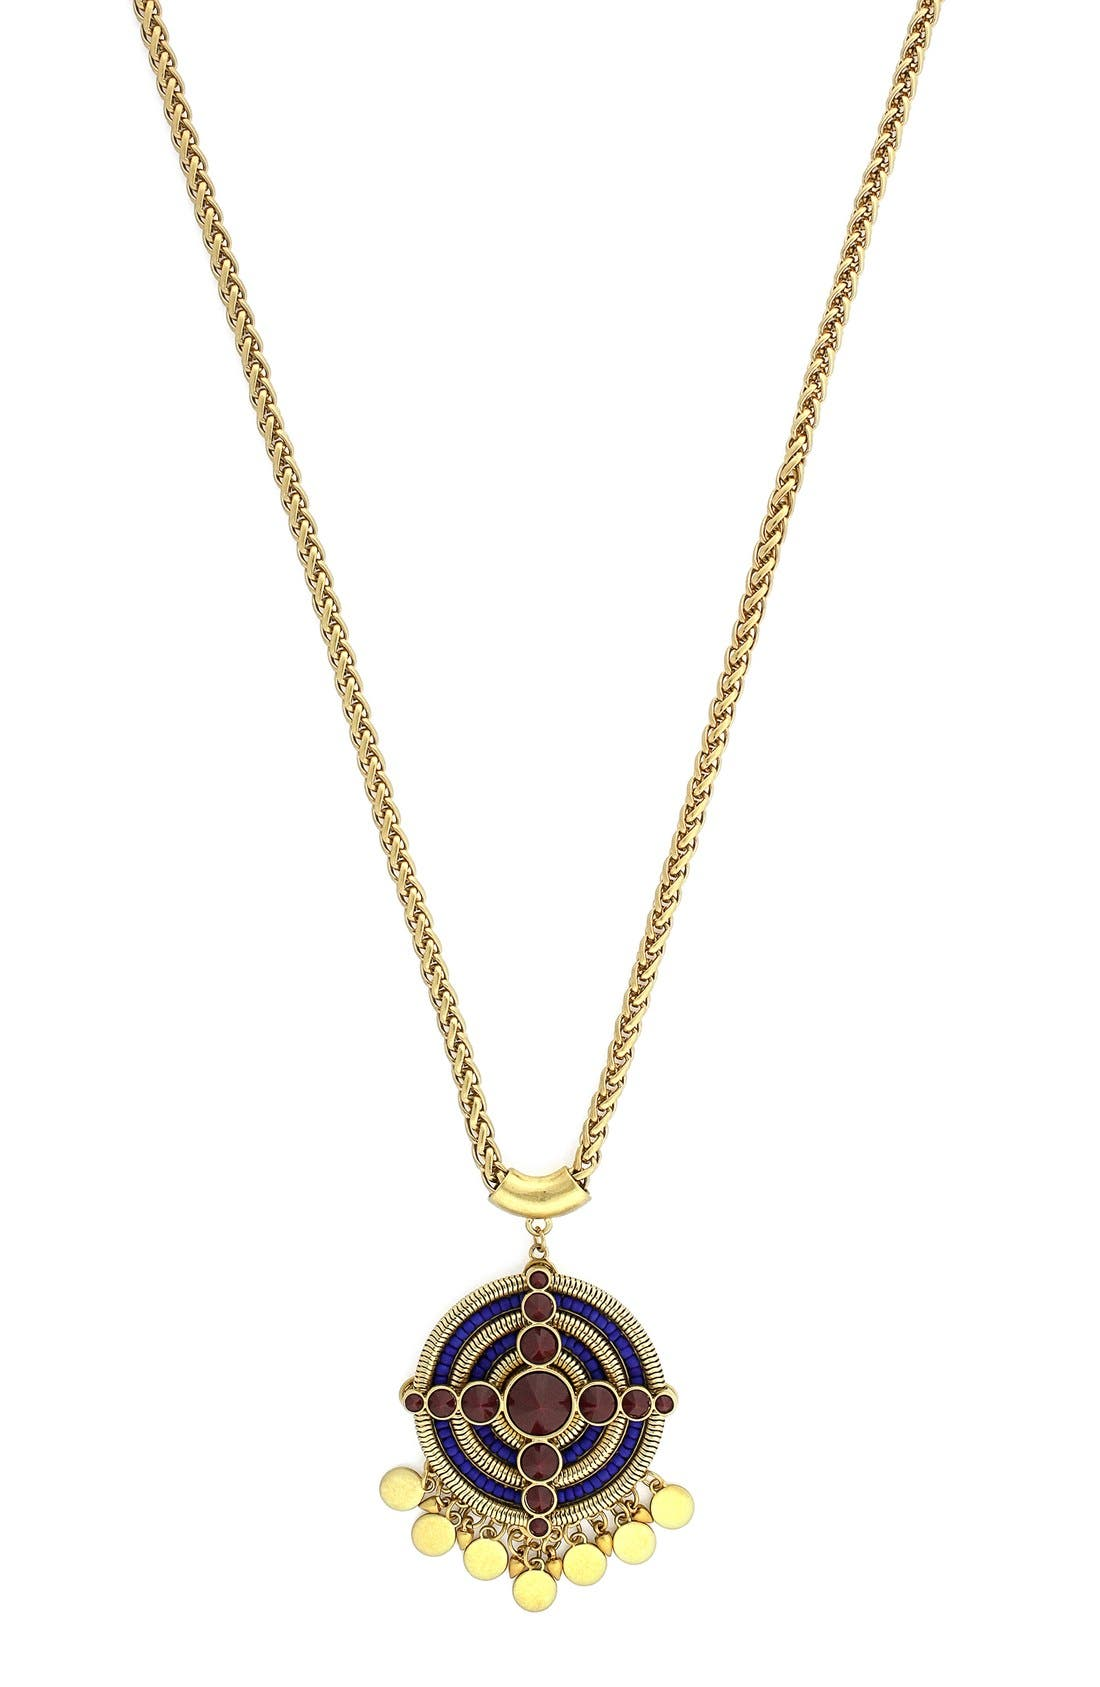 Alternate Image 1 Selected - Vince Camuto 'Belle of the Bazaar' Pendant Necklace